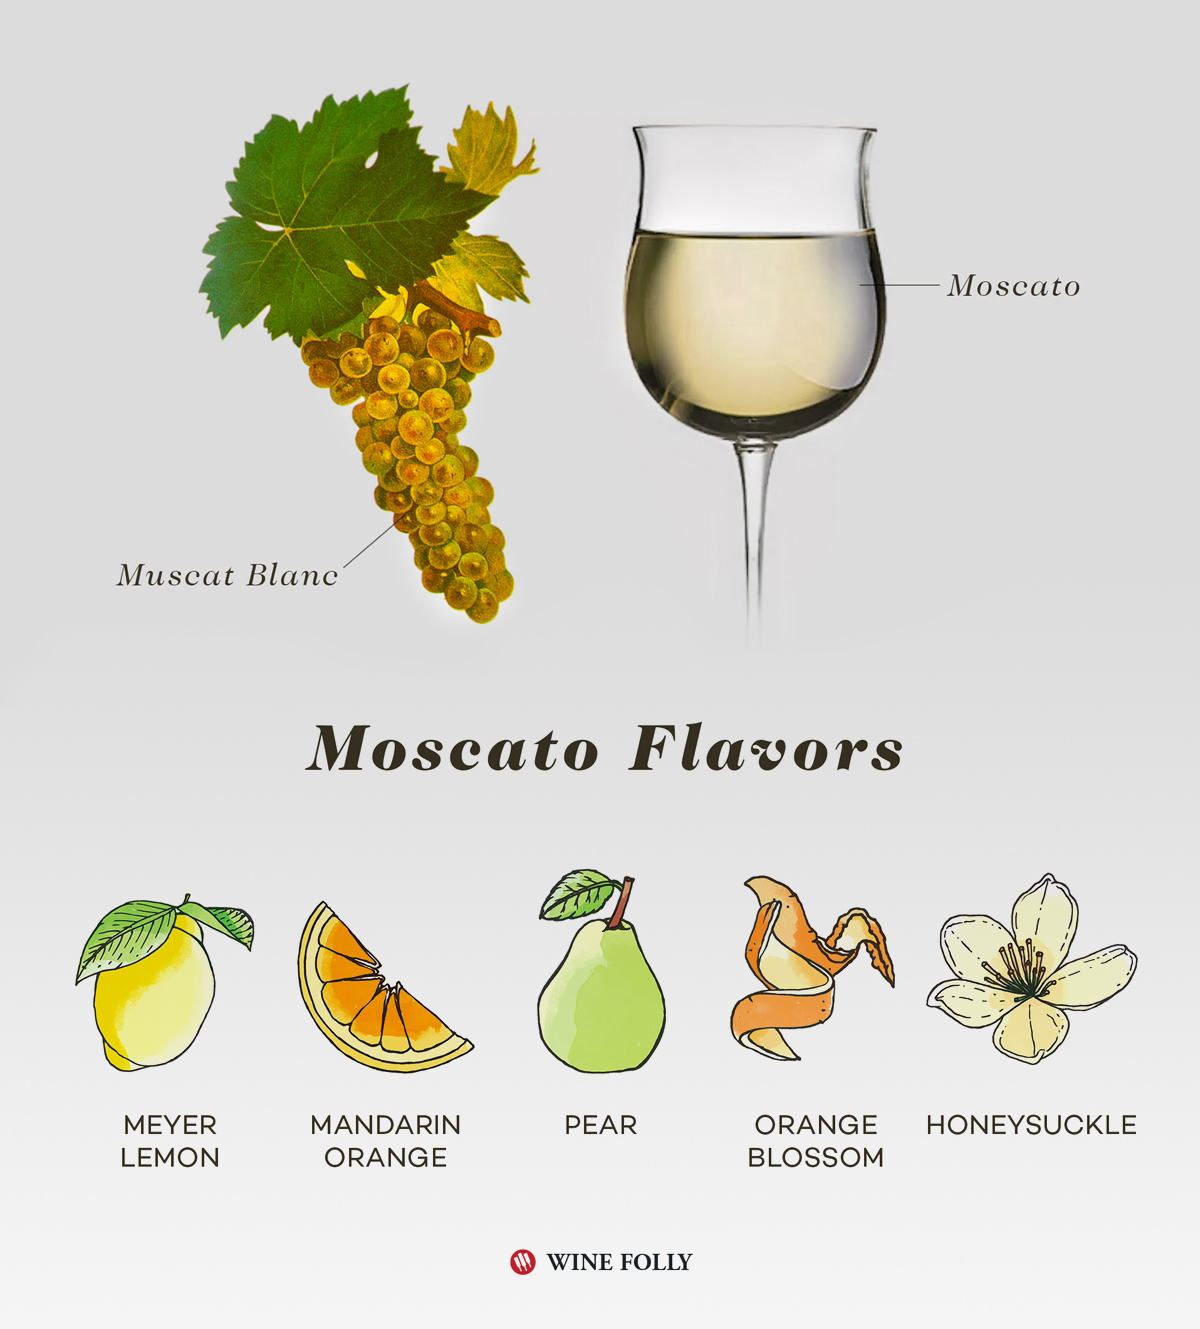 Moscato Bianco Taste Profile infographic by Wine Folly